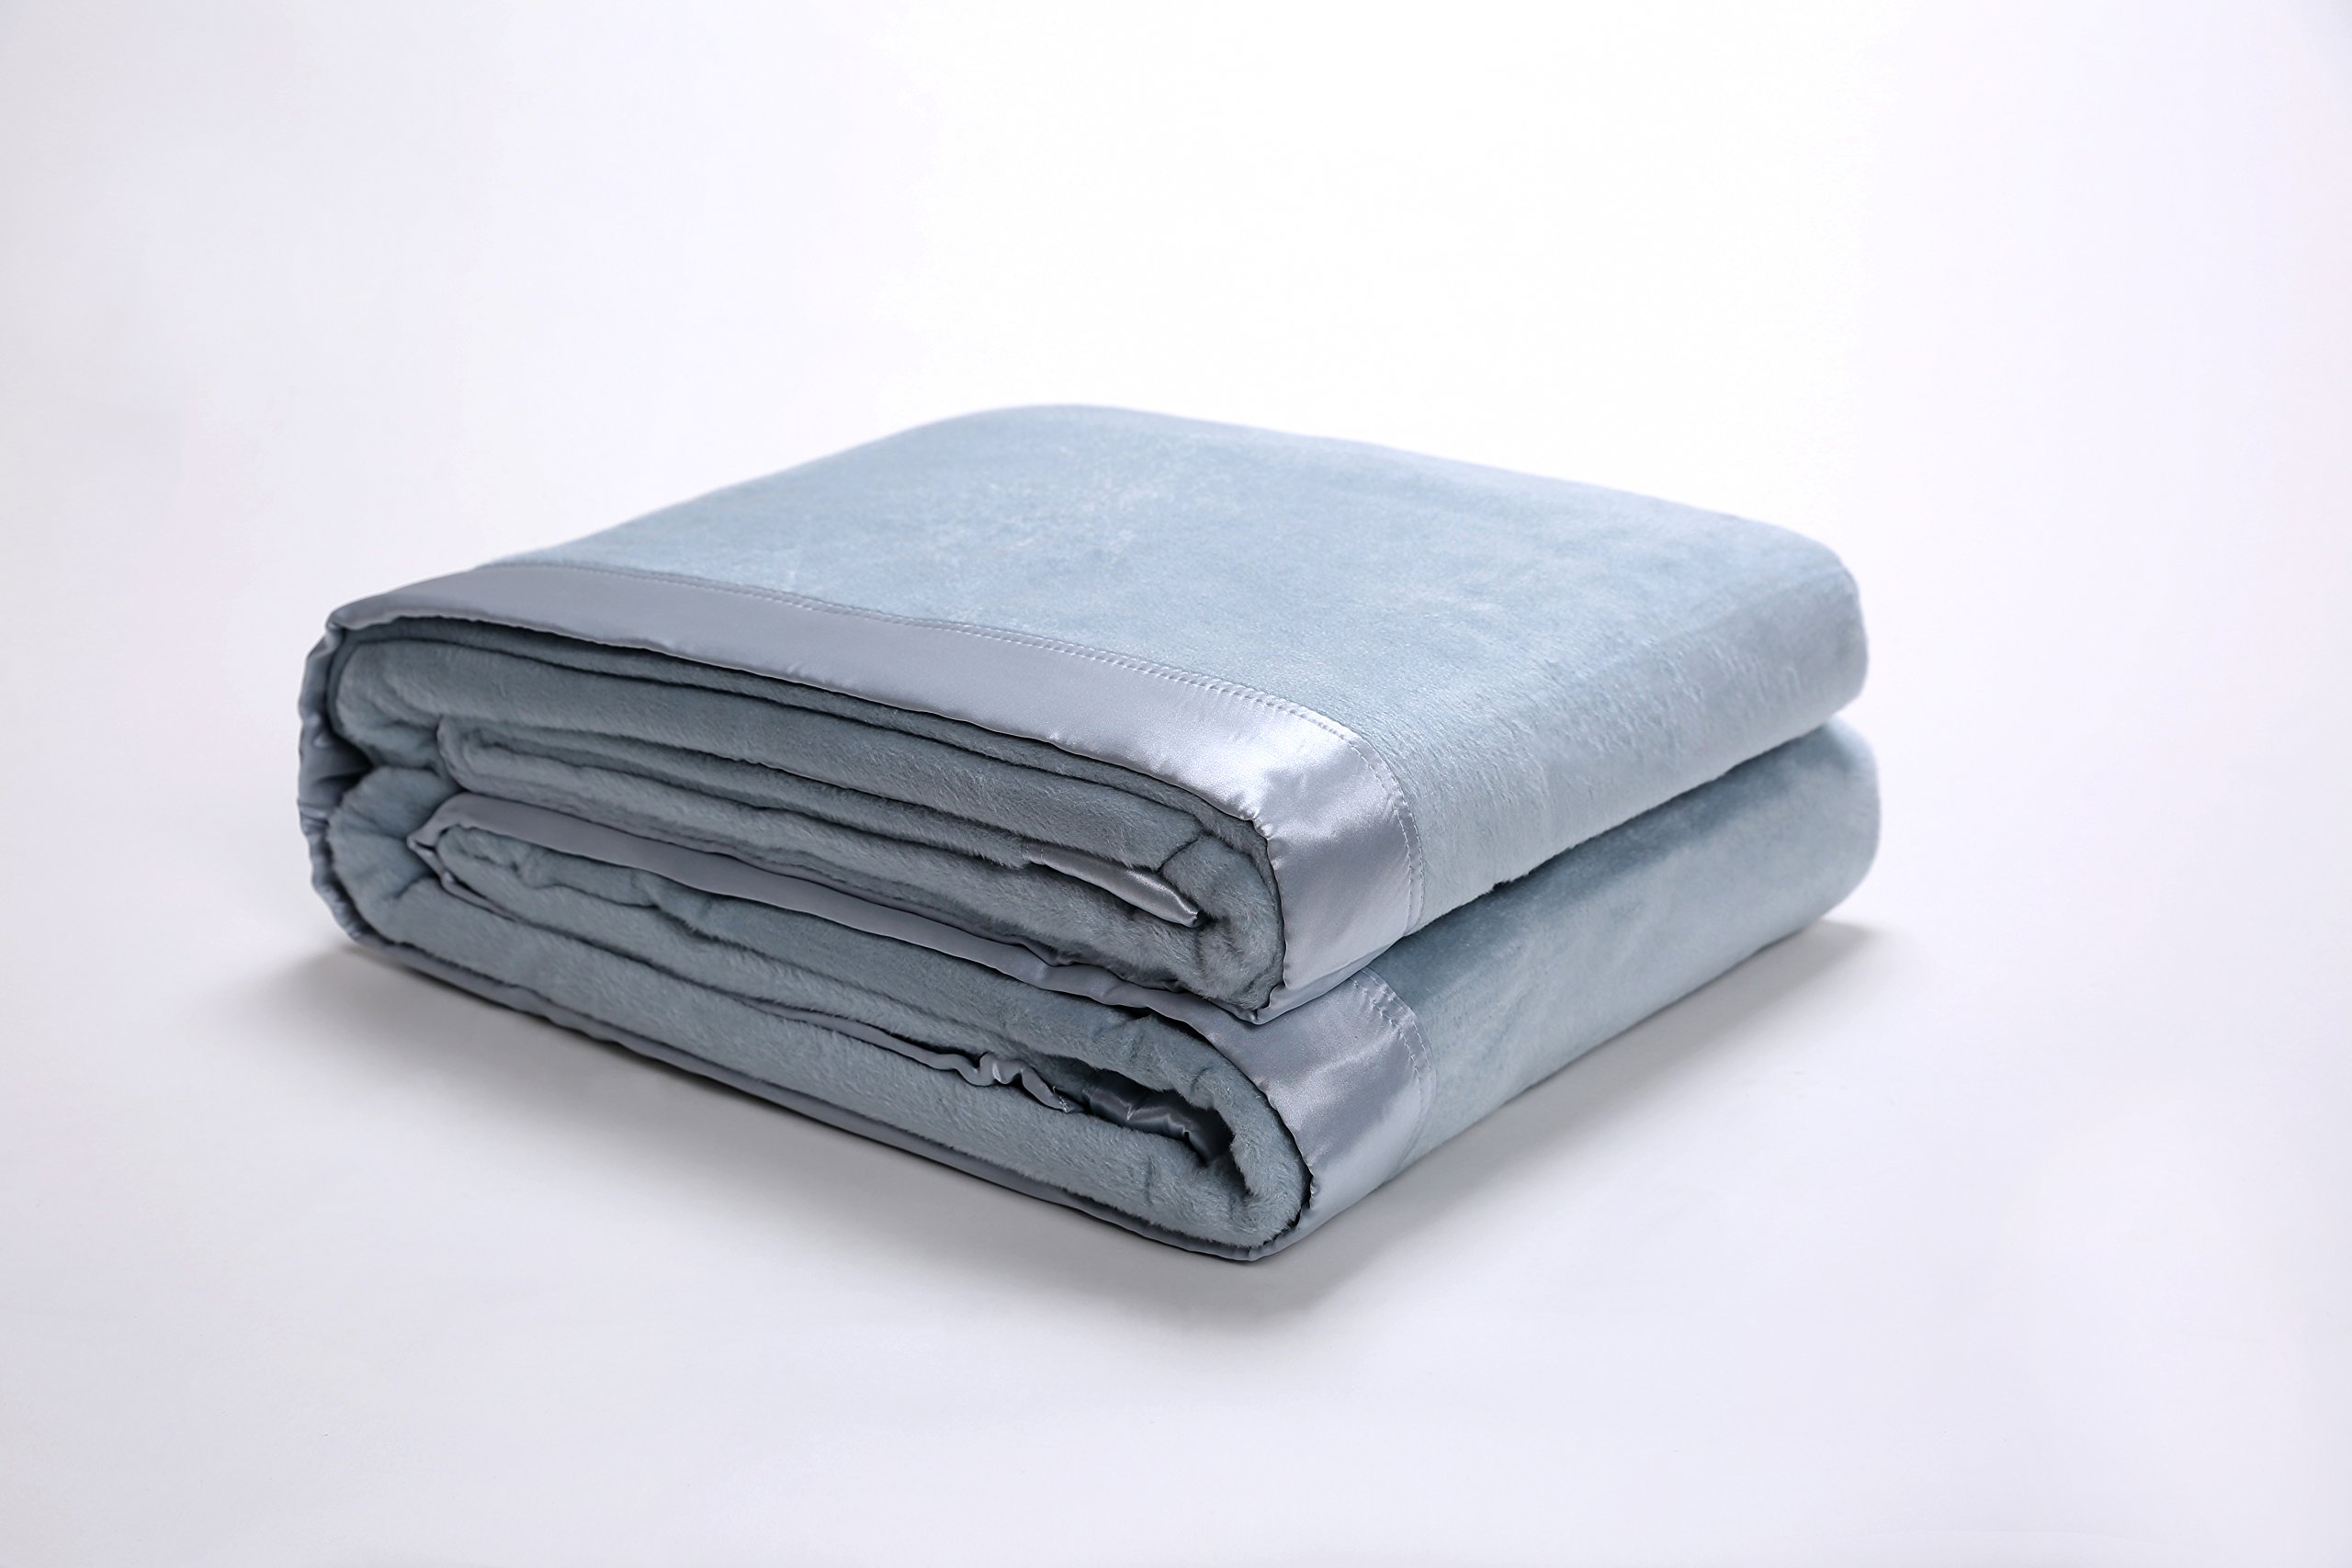 Style Homes Premium Quality Silk Bed Blanket With Silk Sateen Fabric Border, Lightweight and Warm, Full/Queen, Light Blue